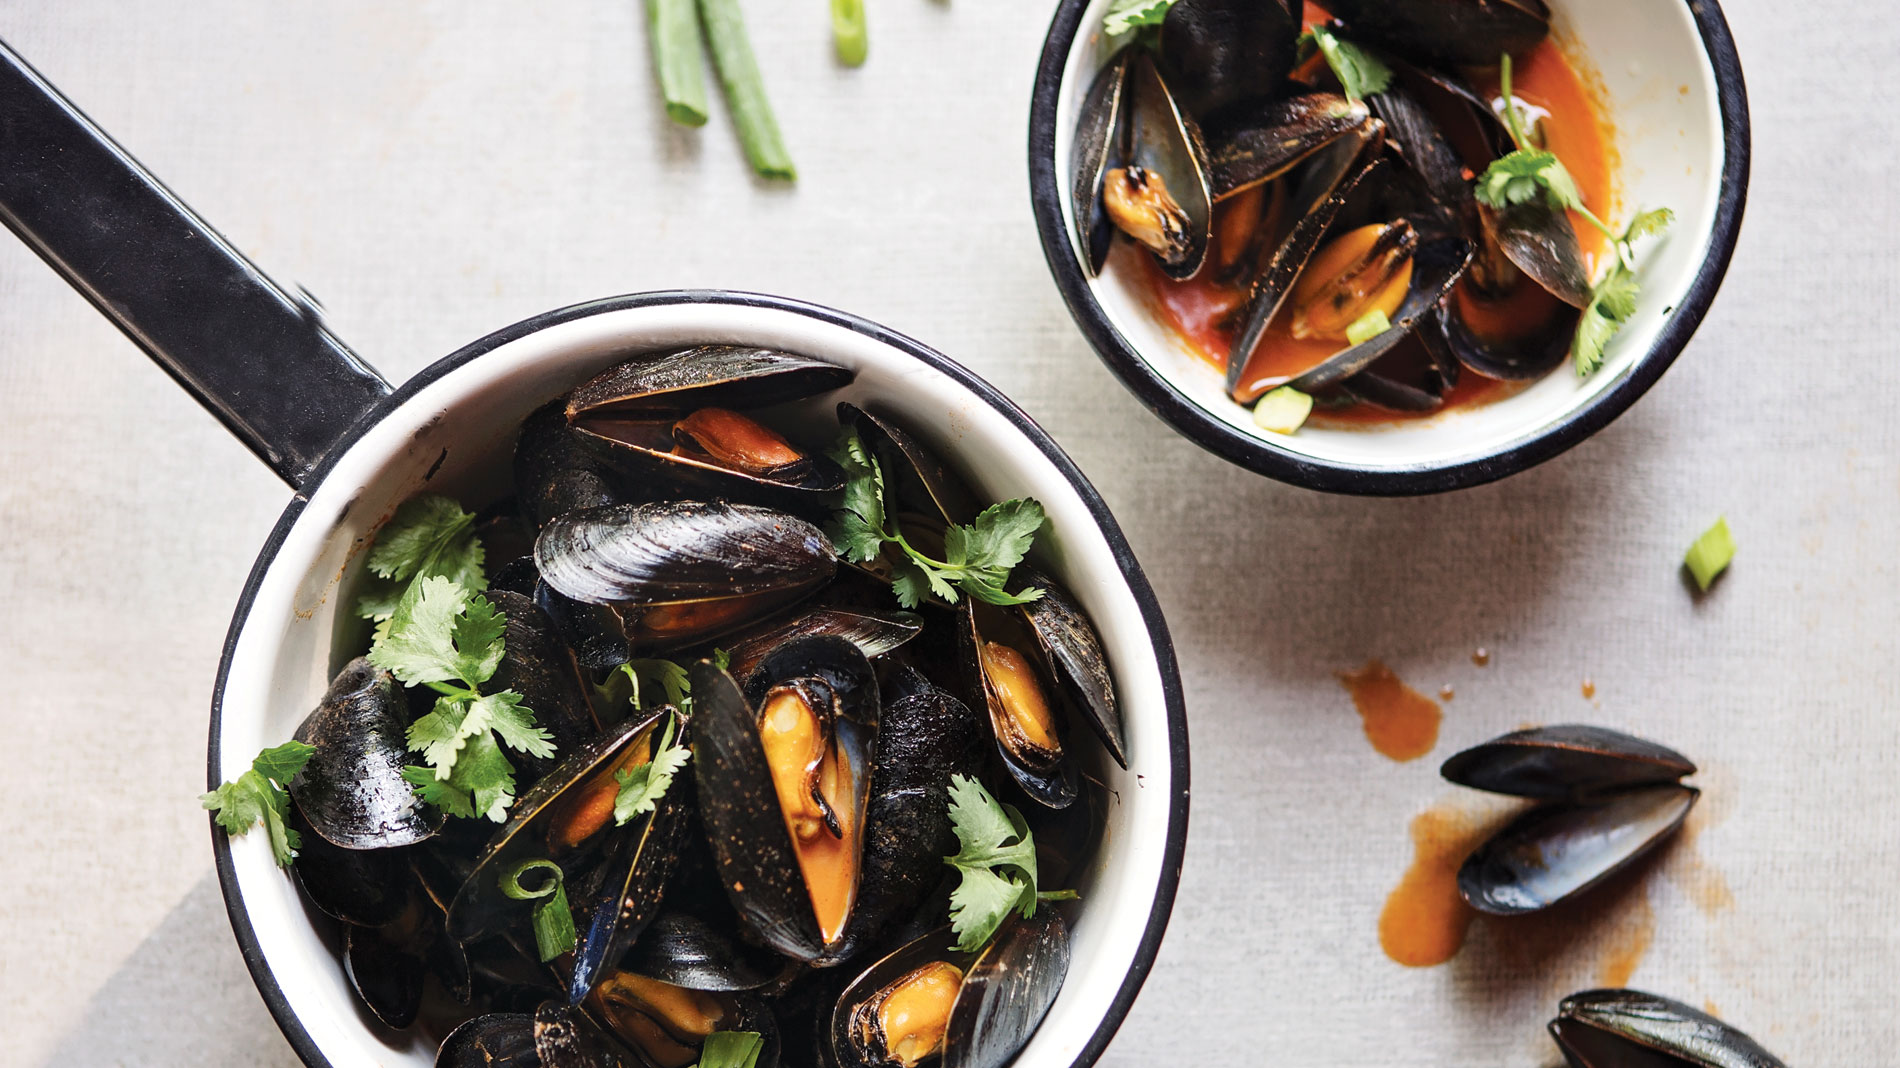 grilled mussels with red curry in a cast-iron skillet